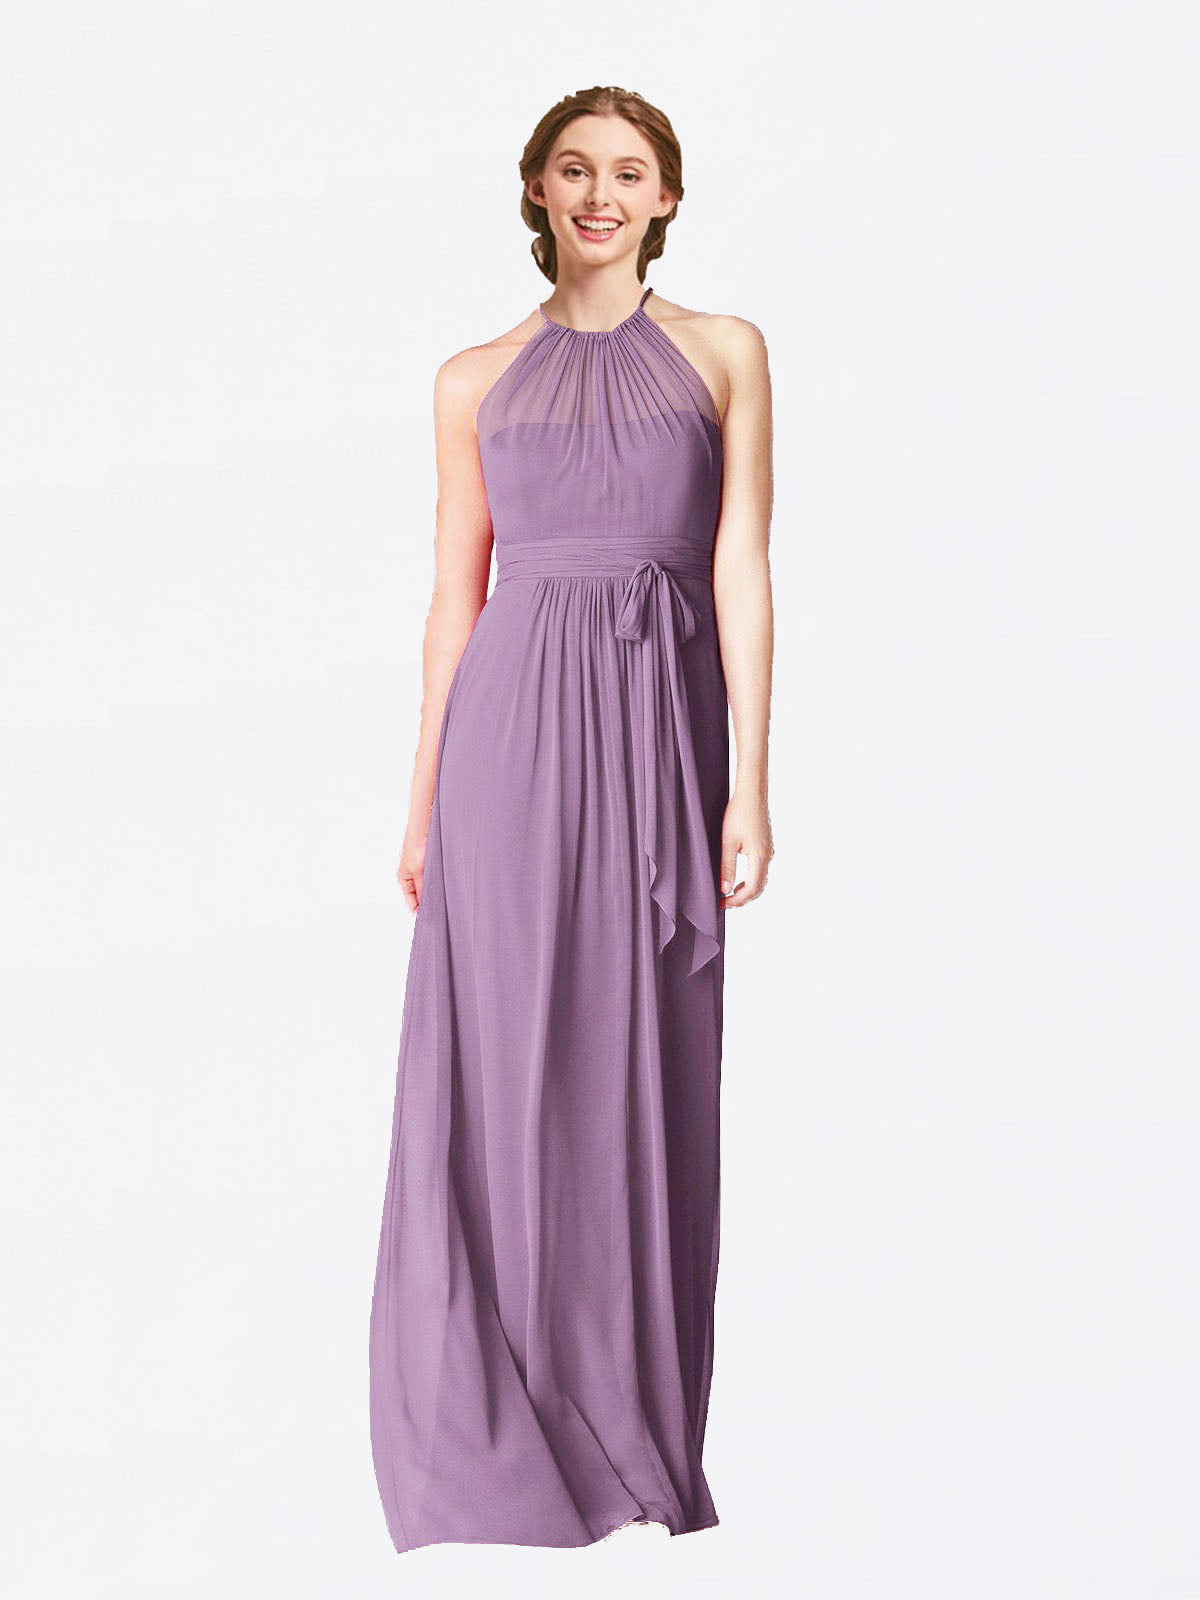 Long A-Line Halter Sleeveless Dark Lavender Chiffon Bridesmaid Dress Laura